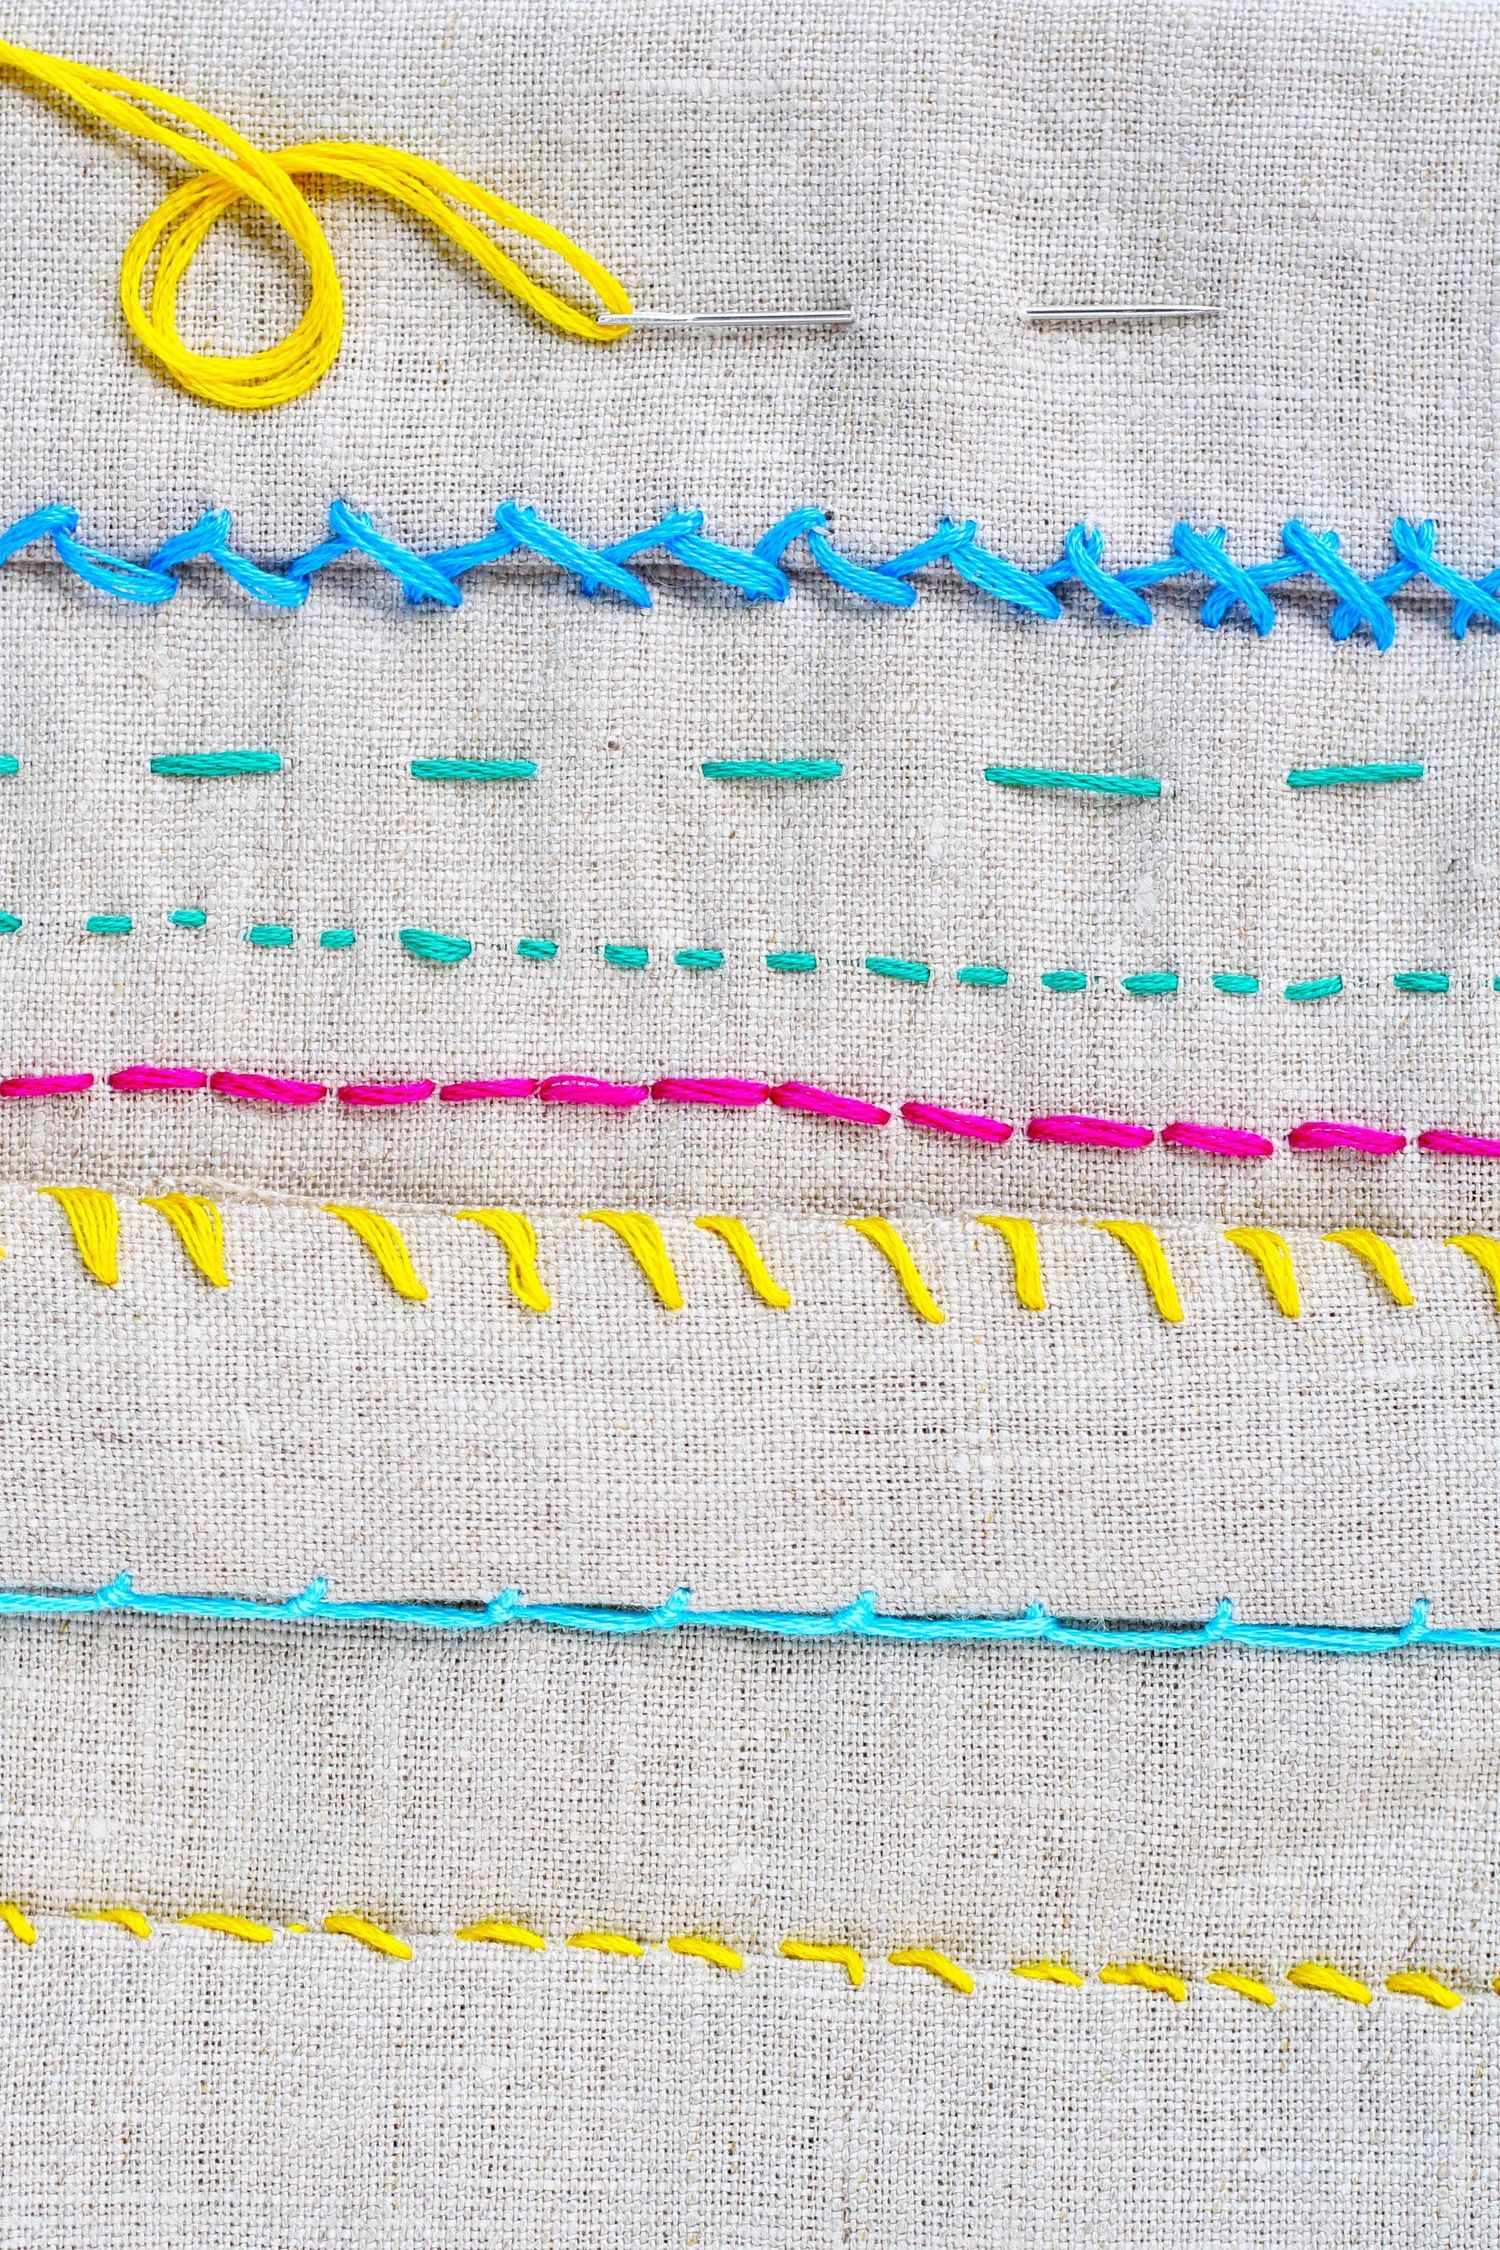 6 Helpful Stitches for Home Sewing Projects | Apartment therapy ...